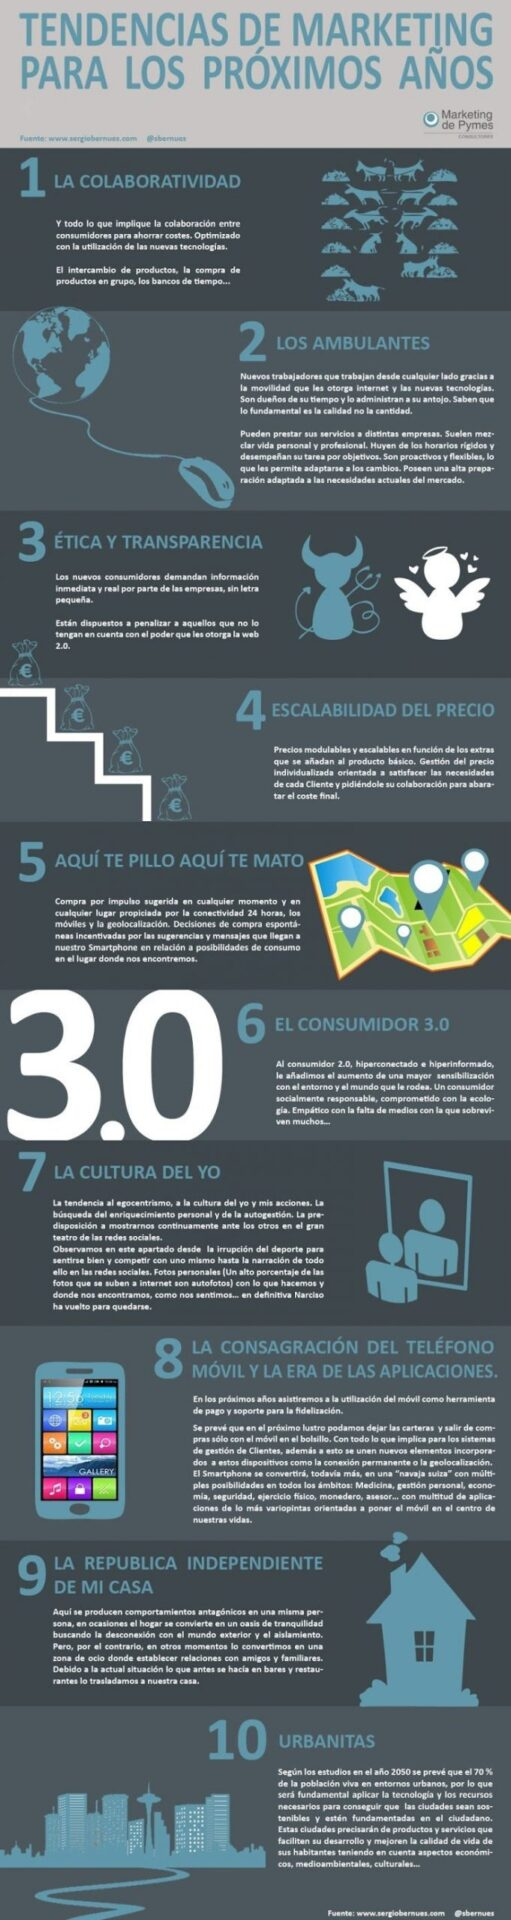 Tendencias-Marketing-1 - mclanfranconi